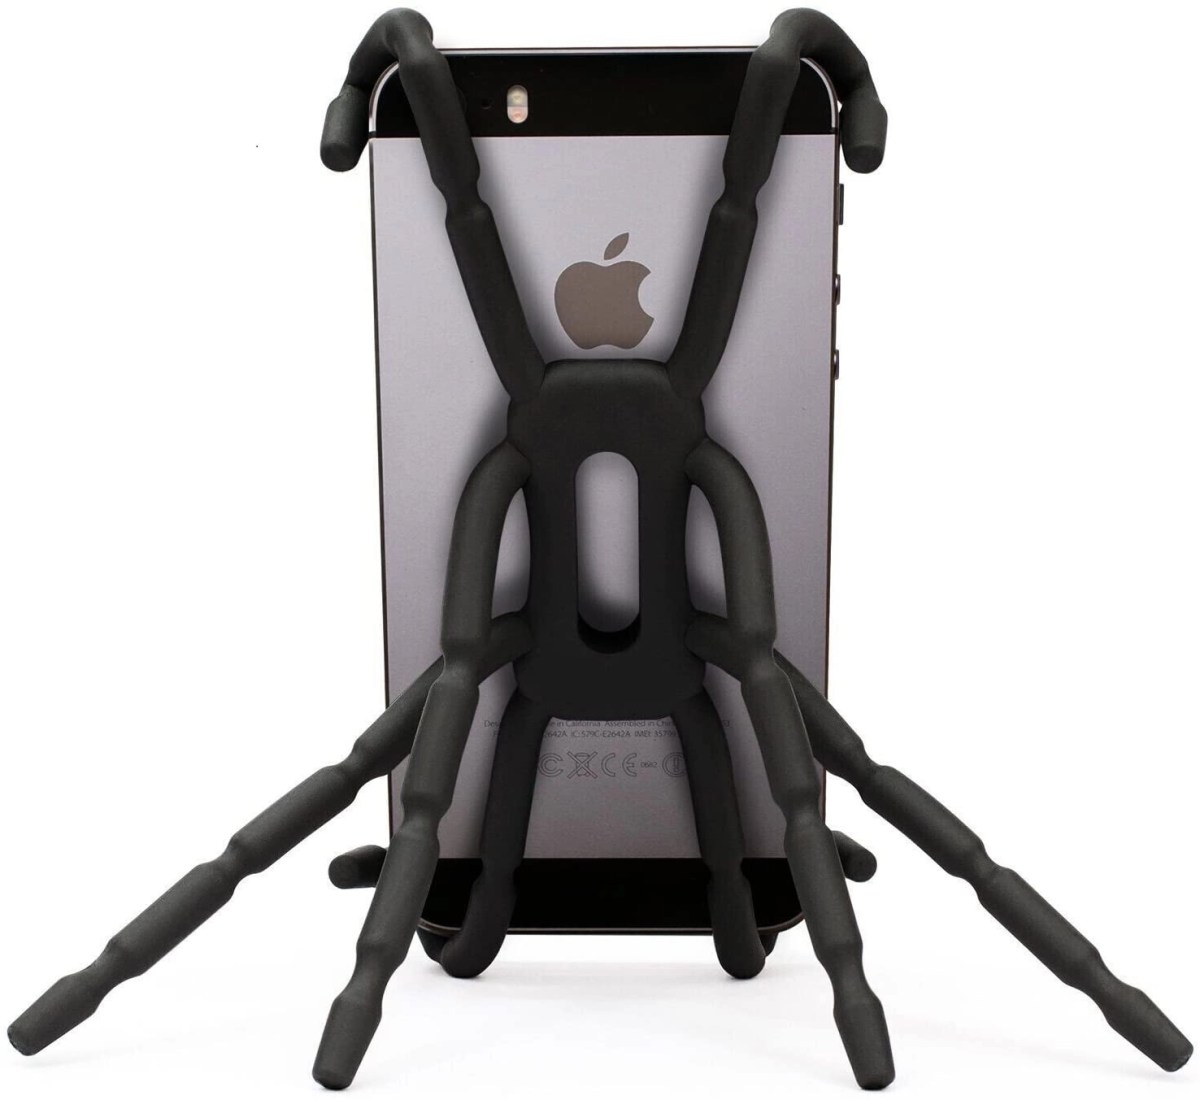 spiderpodium, car mount, cell mount, cell phone mount, cell phone, iphone, android